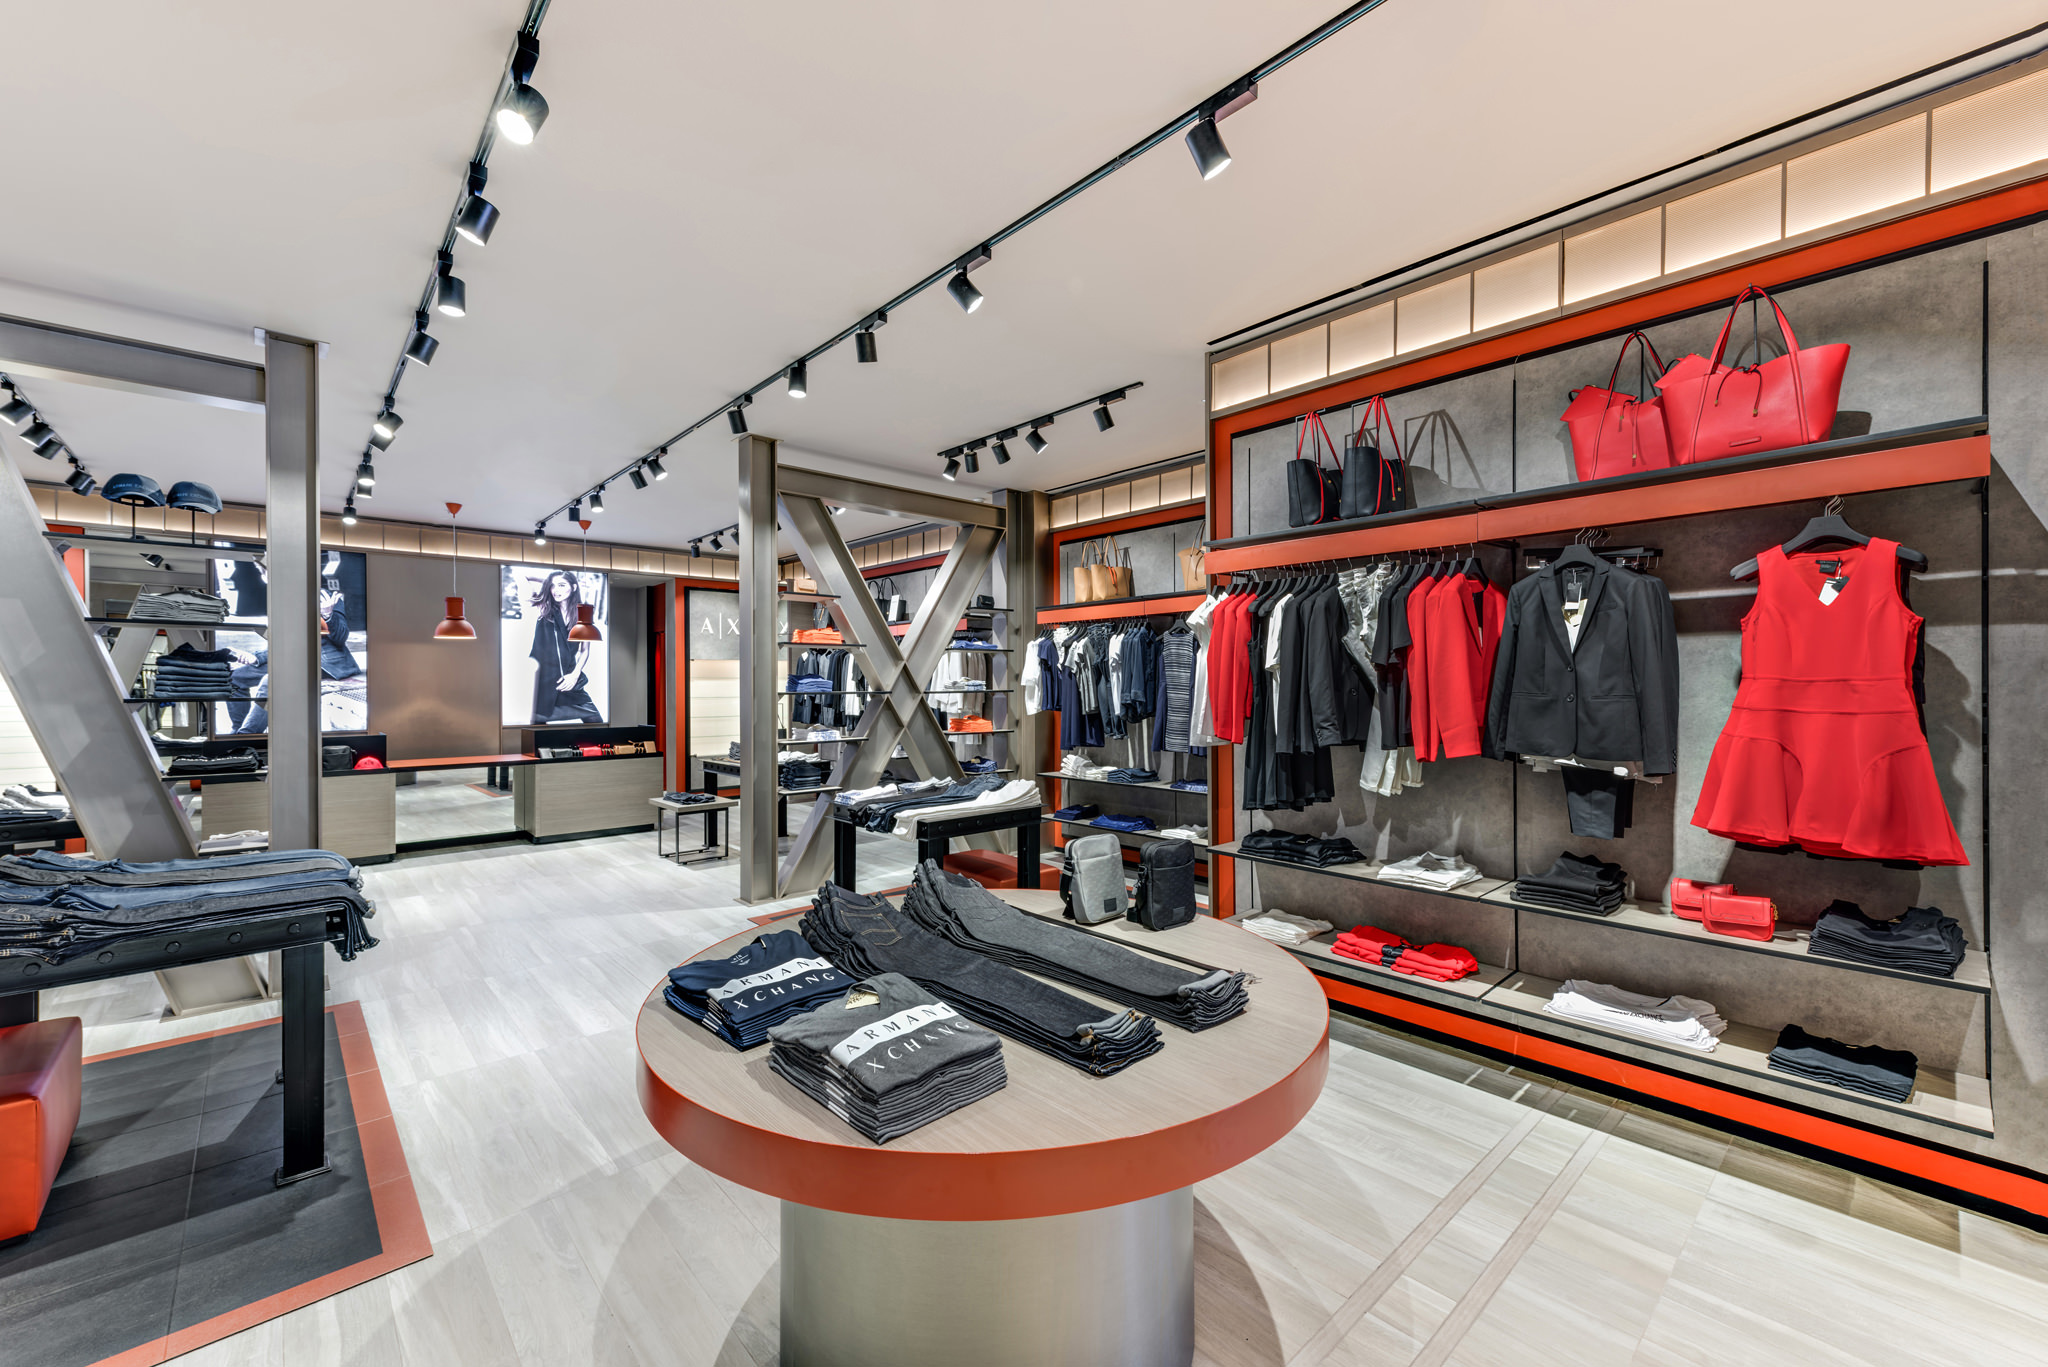 20160801 - Armani Exchange - HCM - Commercial - Interior - Store - Retouch 0008.jpg